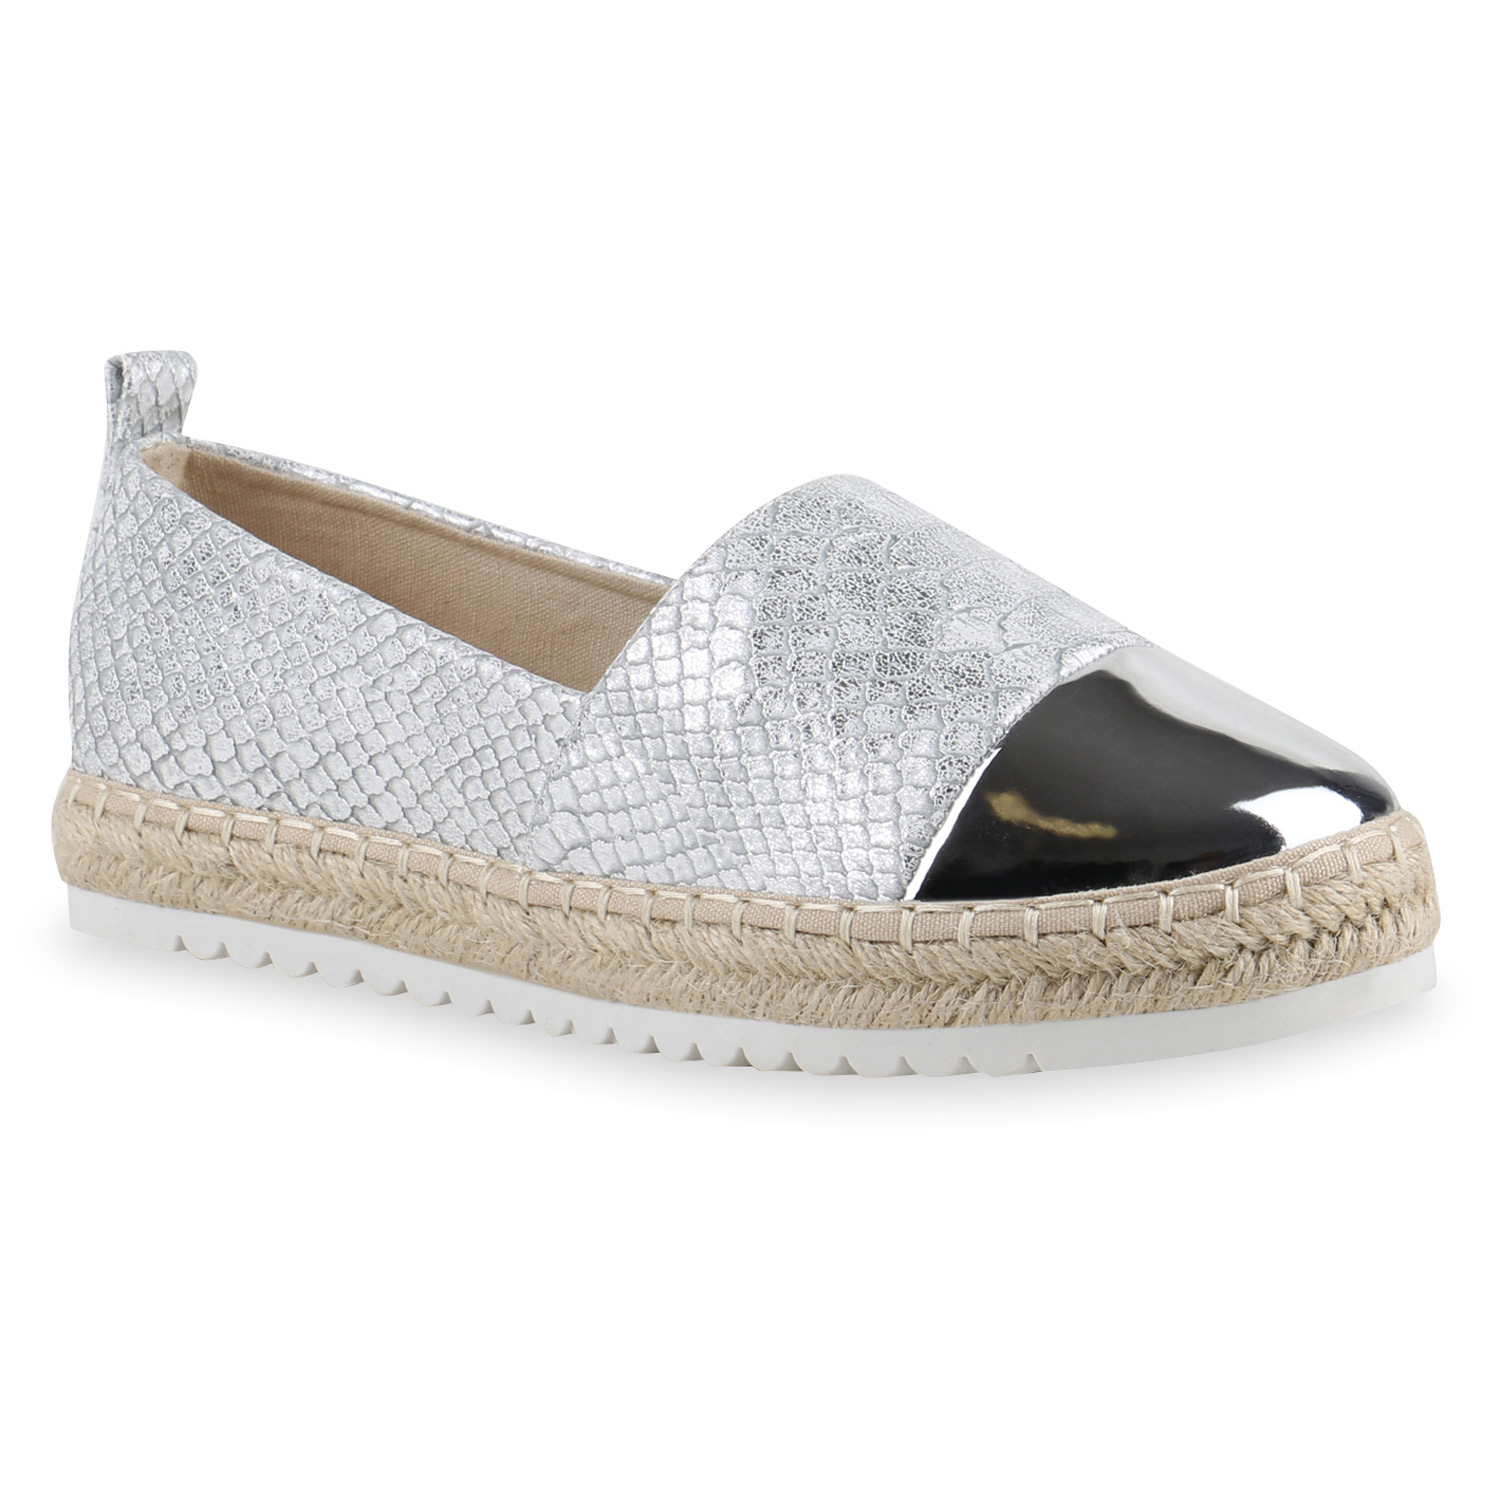 damen espadrilles metallic slipper bast profilsohle flats schuhe 814633 mode ebay. Black Bedroom Furniture Sets. Home Design Ideas